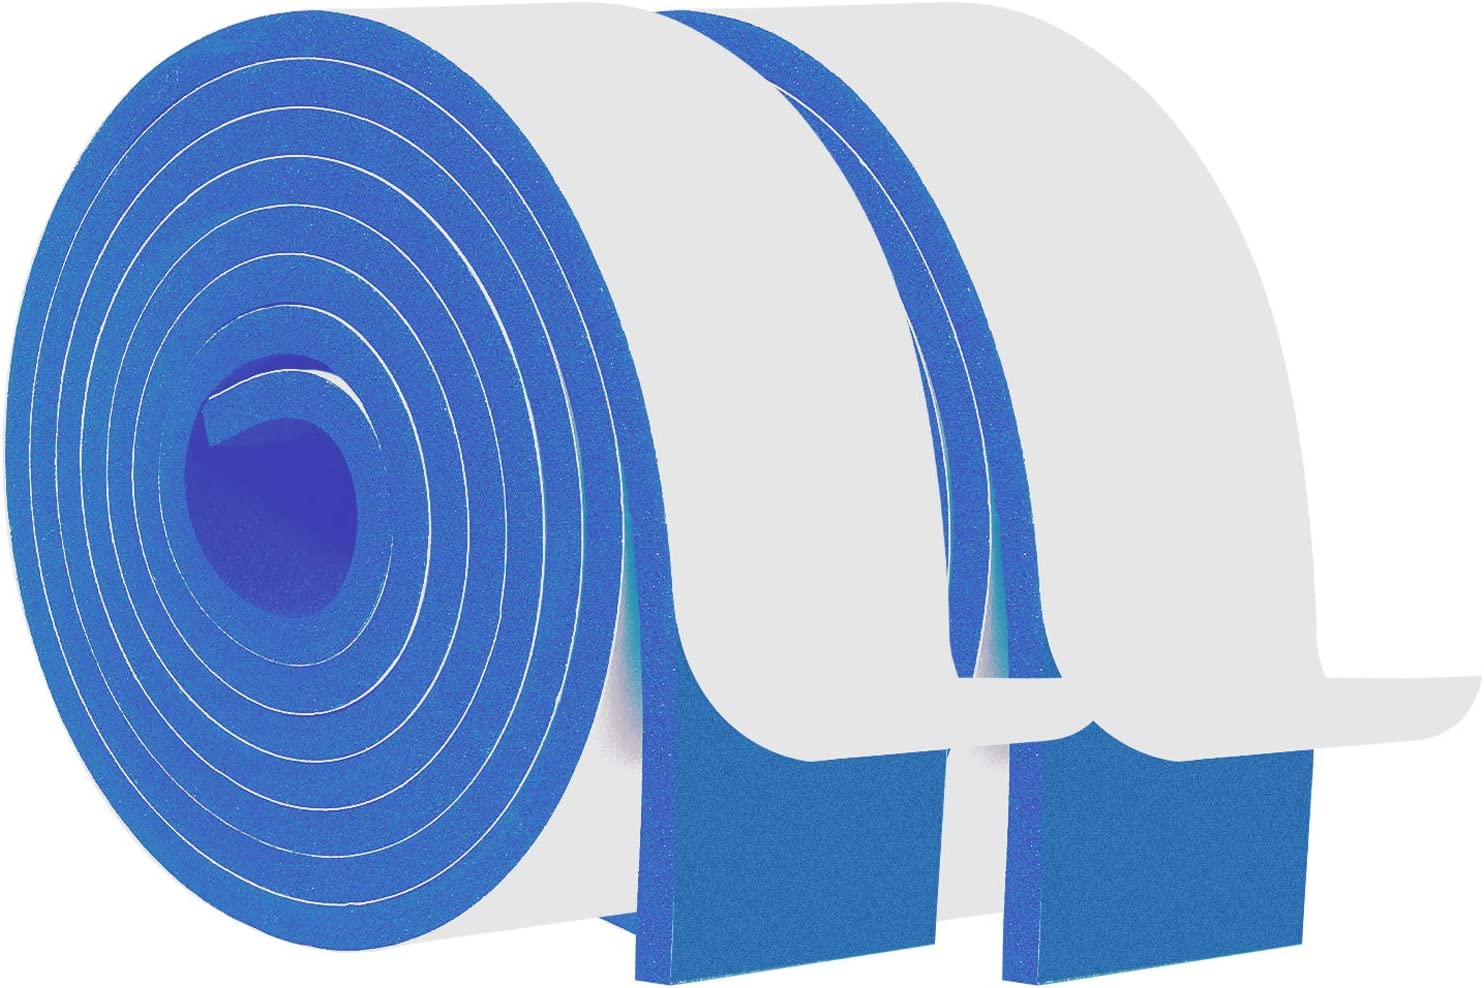 Foam Insulating Tape-2 Rolls, 2 Inch Wide X 1/4 Inch Thick Total 13 Feet Long, Blue Closed Cell Foam Window Seal Door Insulation High Density Adhesive Foam Tape (6.5ft x 2 Rolls)